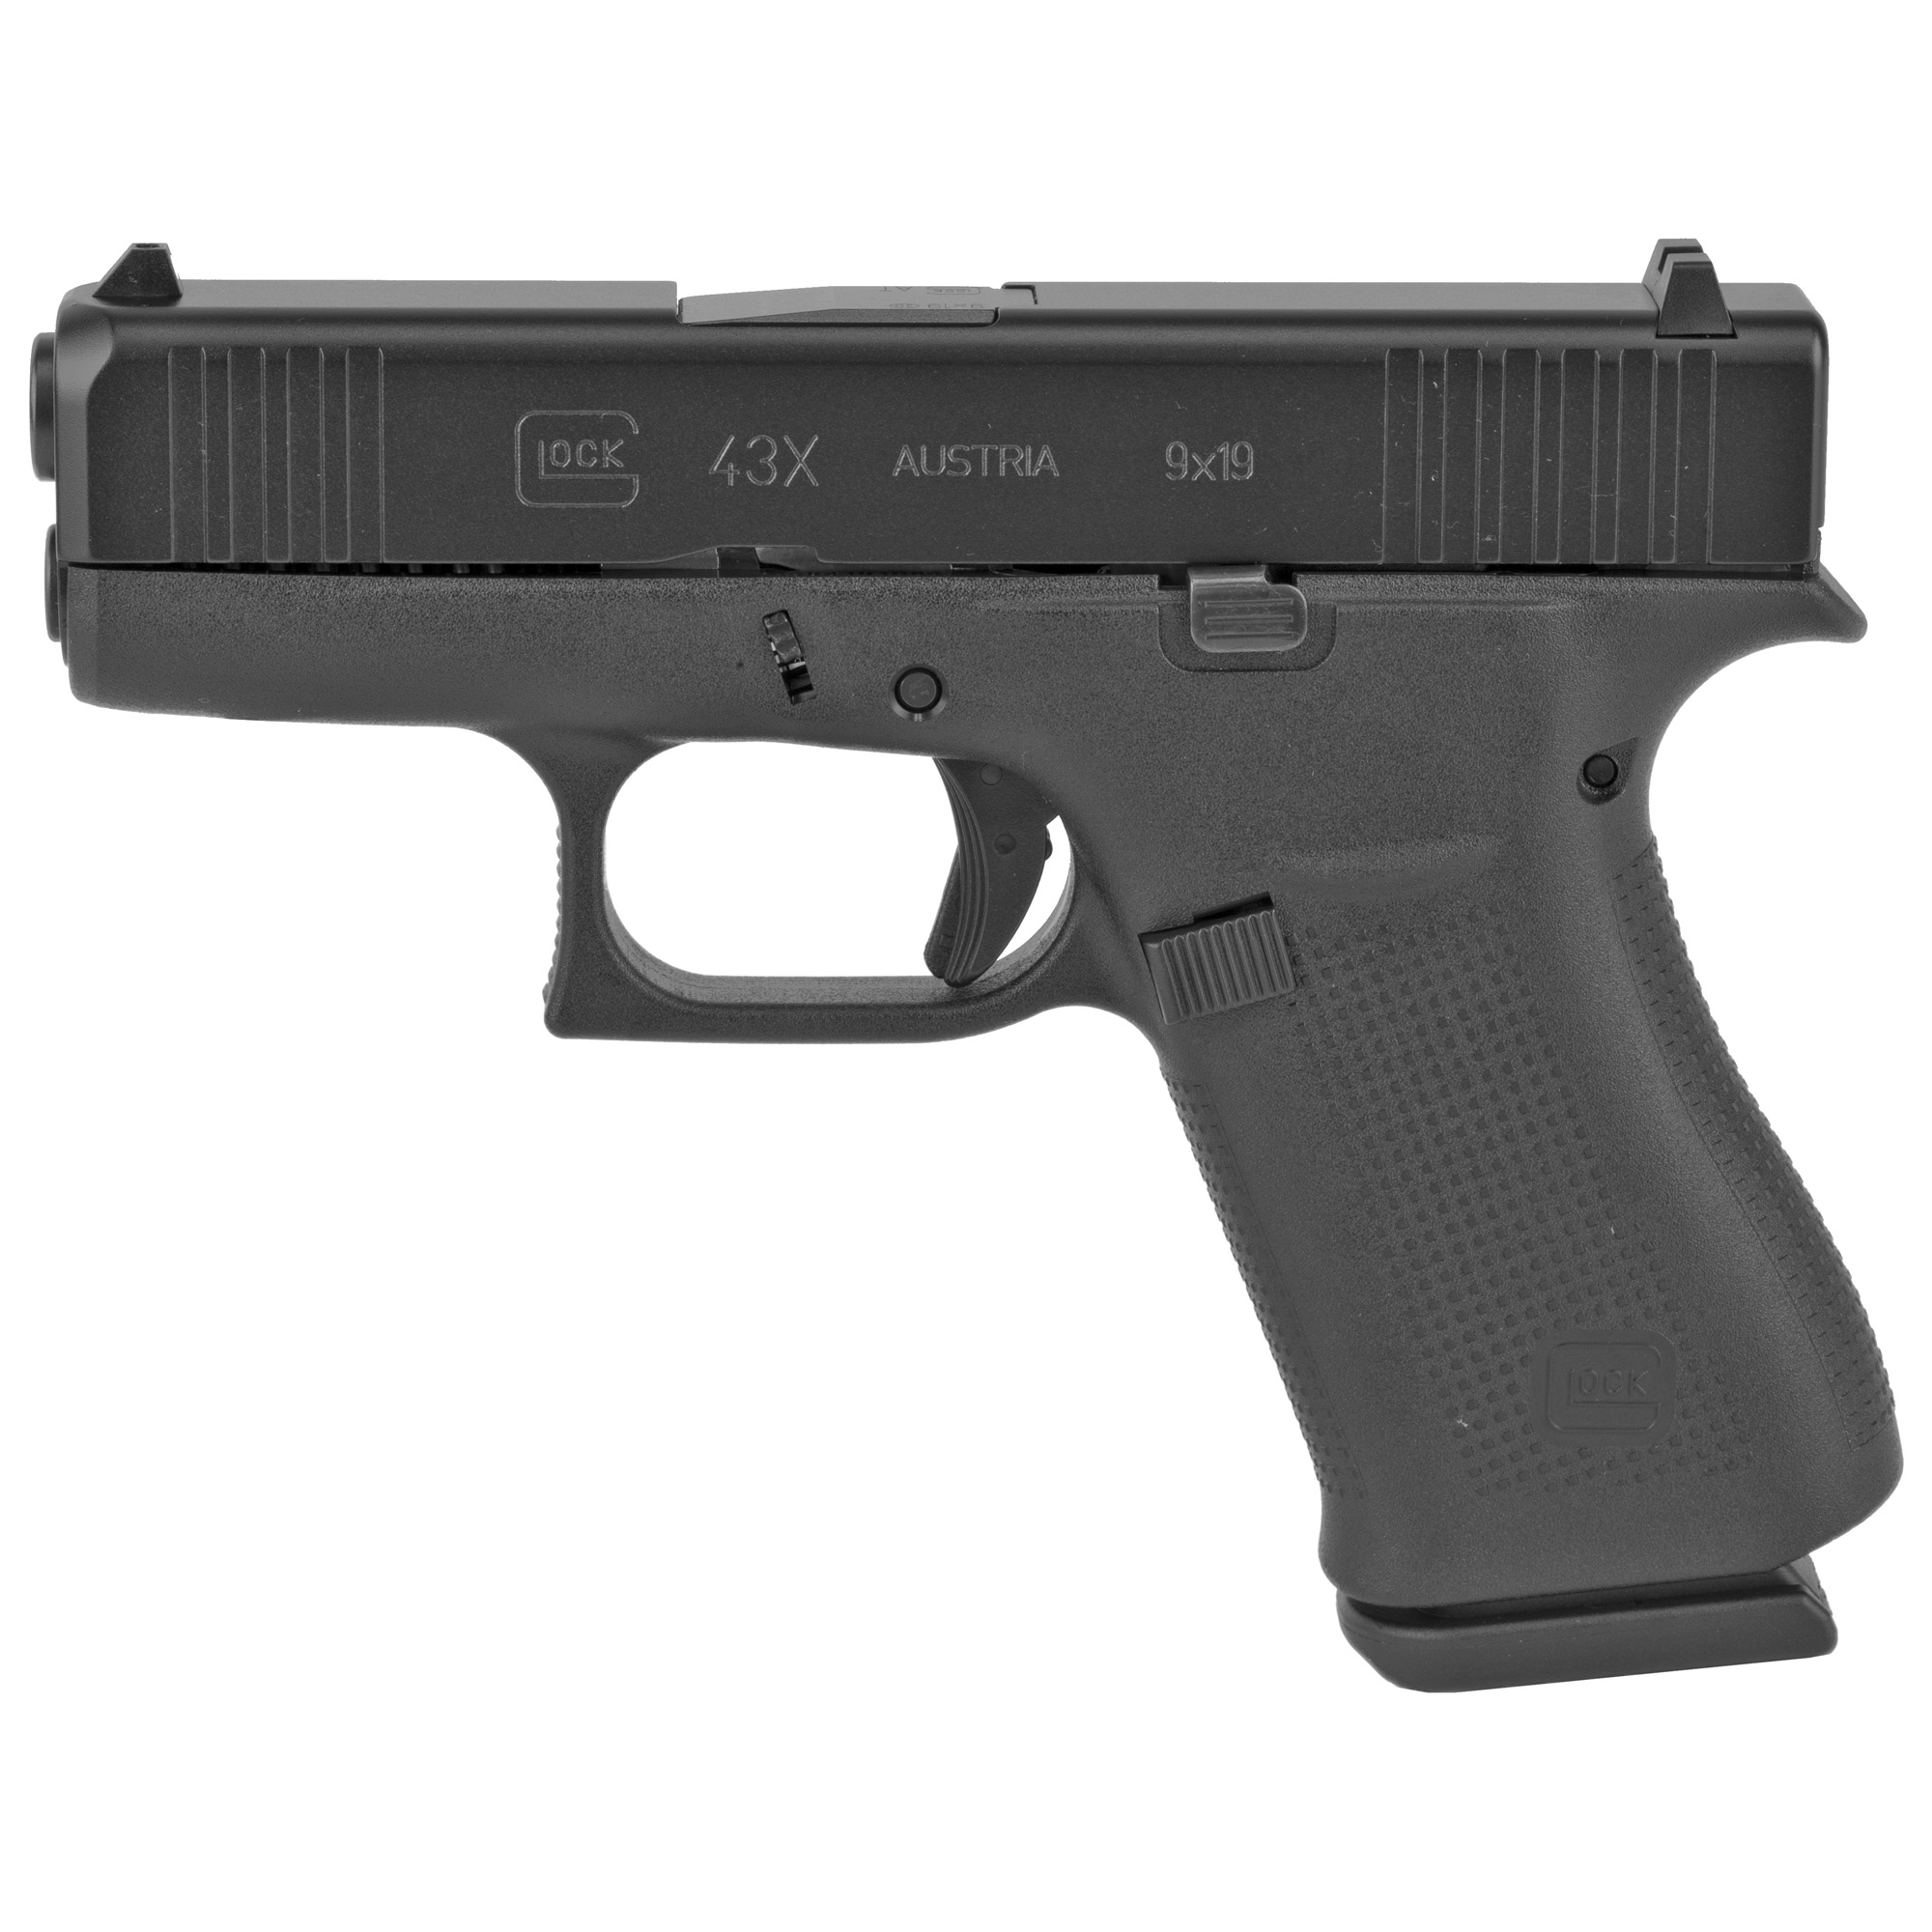 Glock 43, 43x, or 48 build